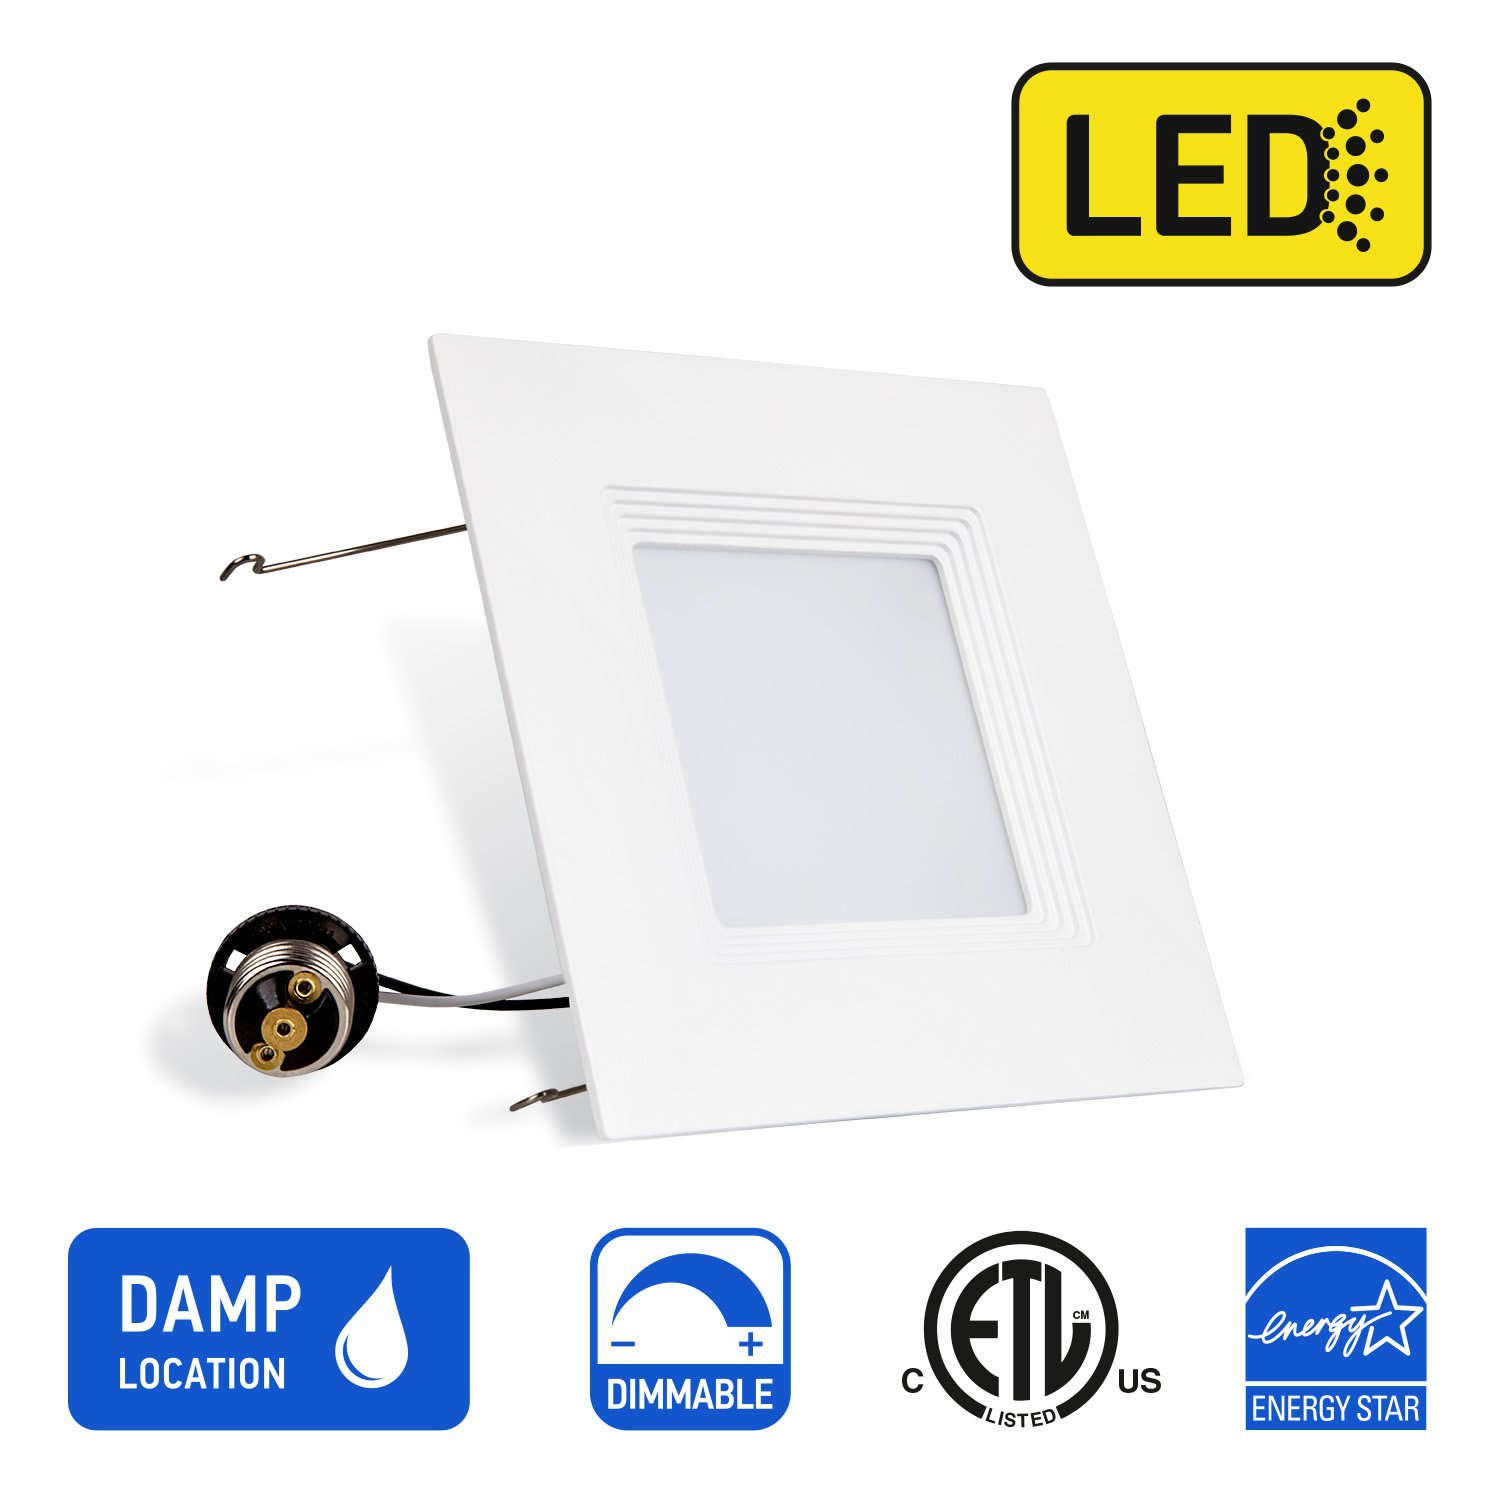 OSTWIN Recessed Lighting, Led 6-inch Can Pot Lights for Ceiling, Square Downlight Retrofit Kit Fixture, Baffle Trim, 16.5W (120 Watt), 3000K (Soft White) Dimmable, ETL & Energy Star Listed